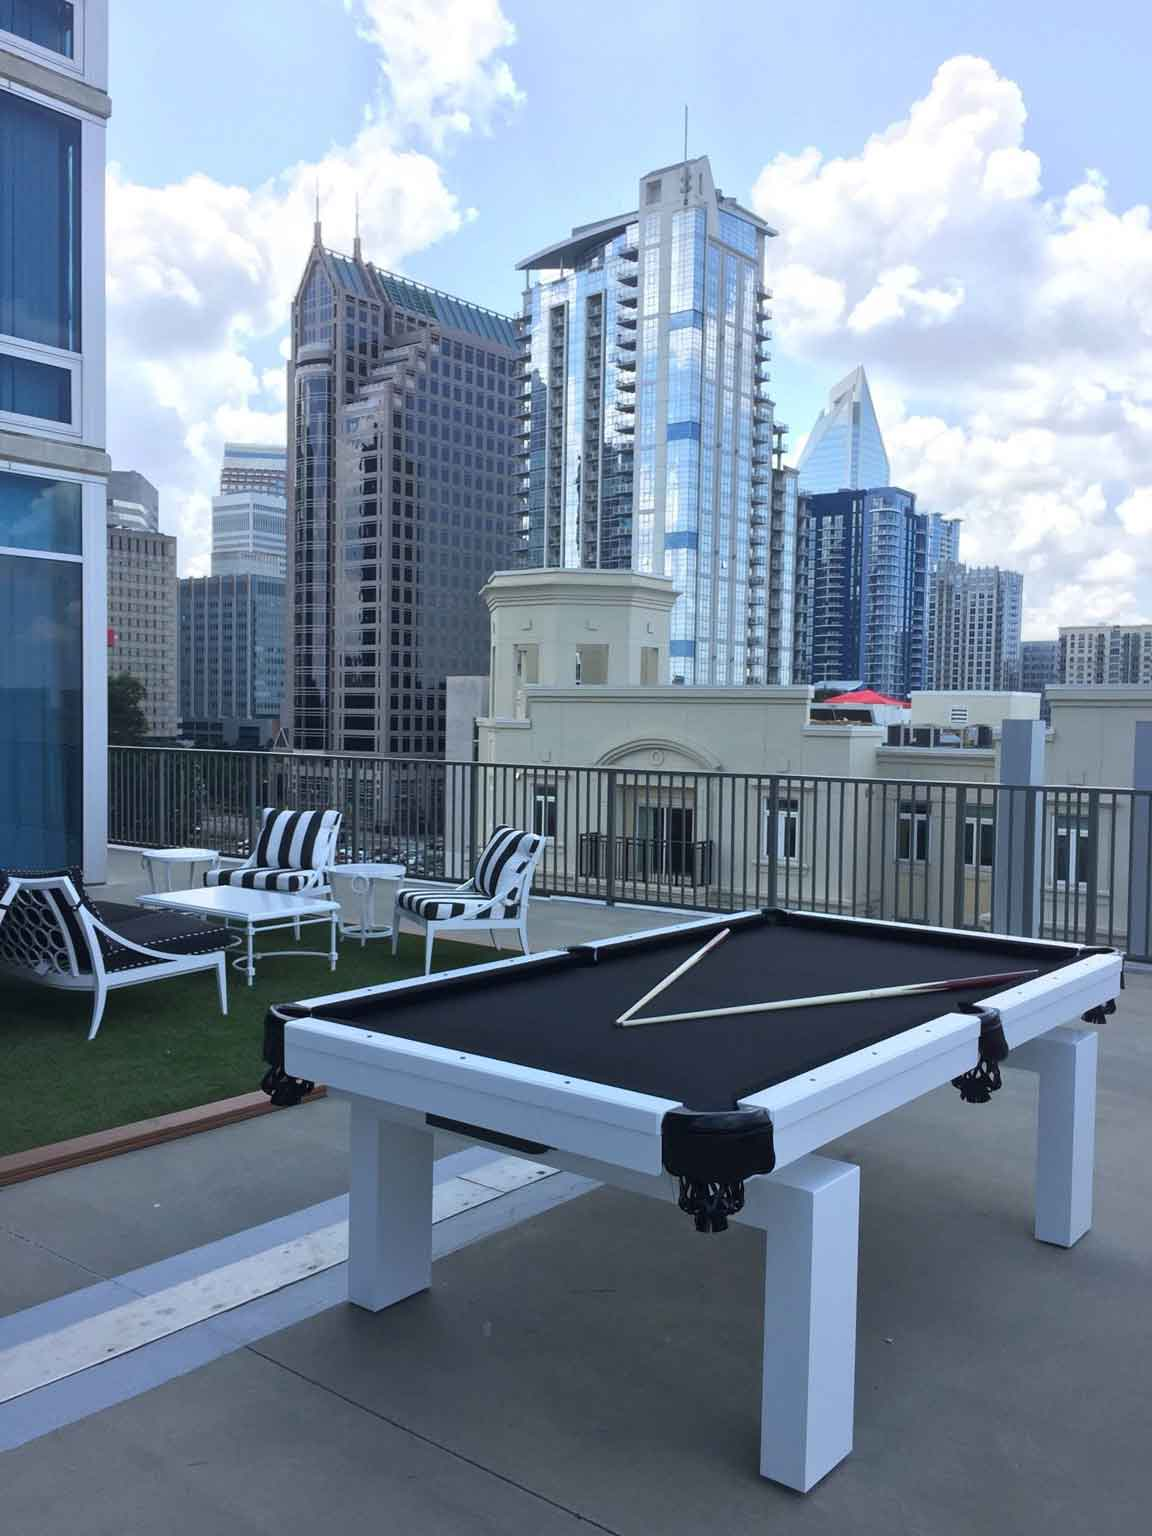 Black and white Oasis custom pool table on rooftop building in North Carolina